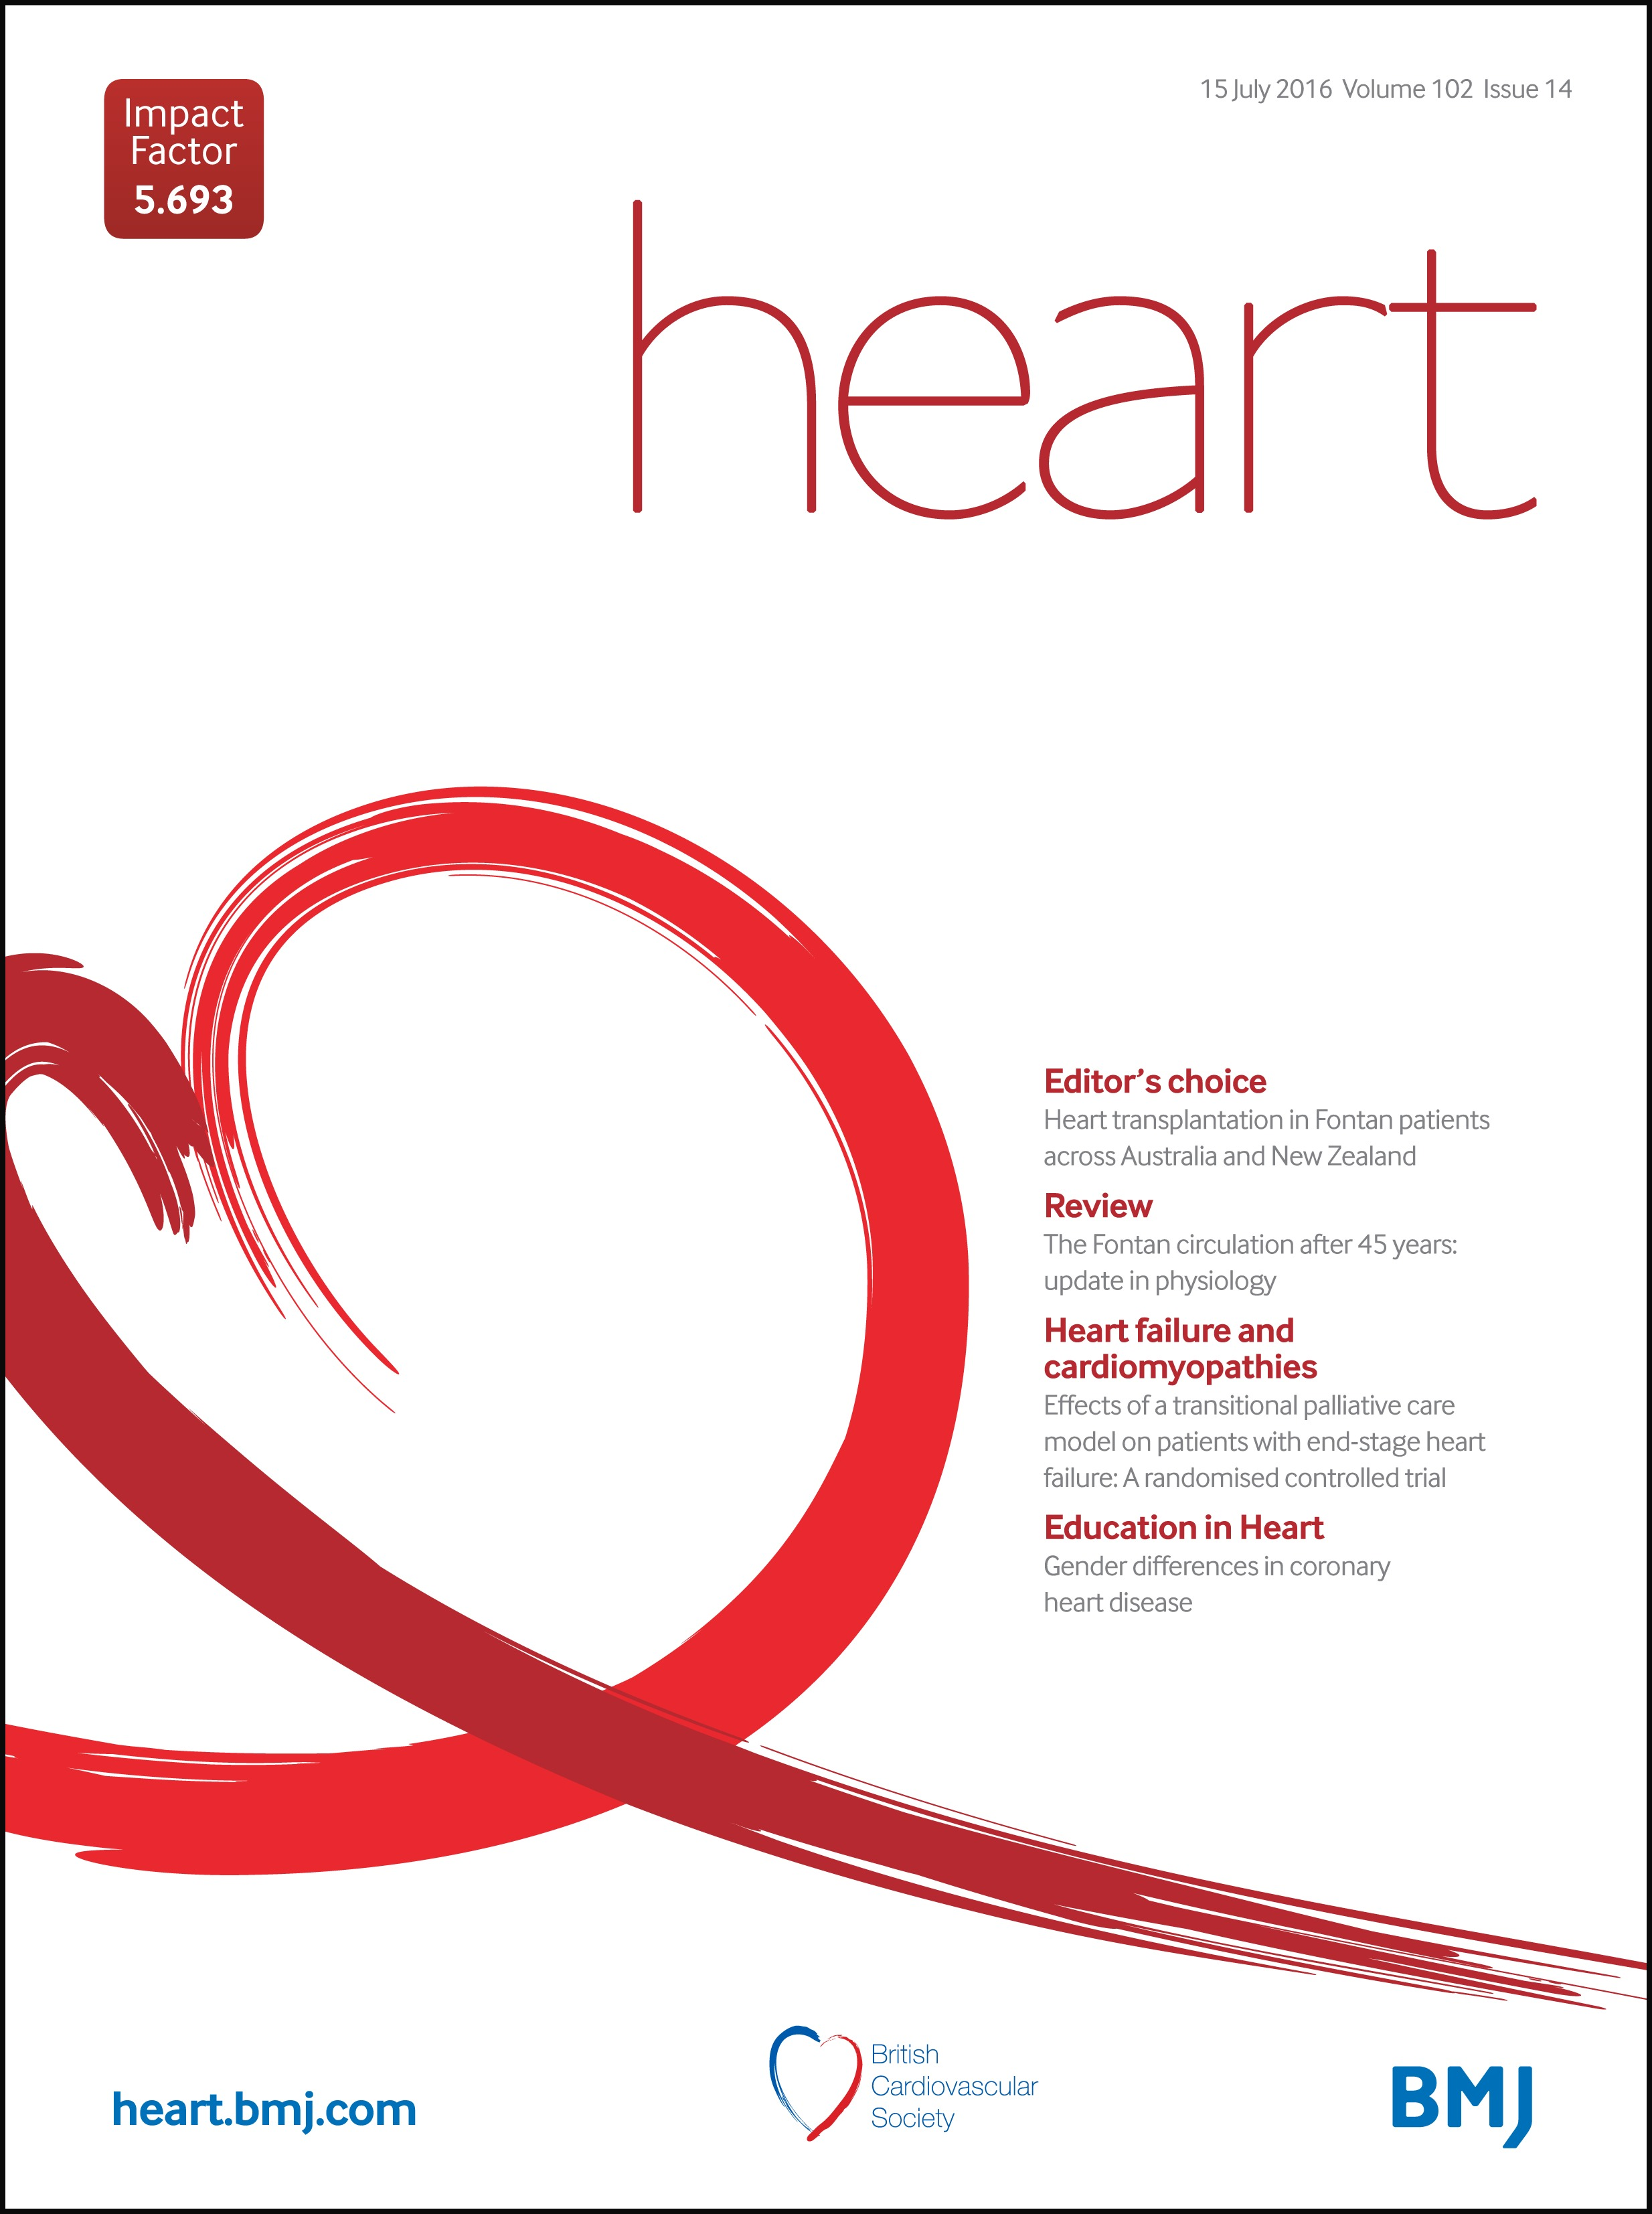 Ual Activity And Concerns In People With Coronary Heart